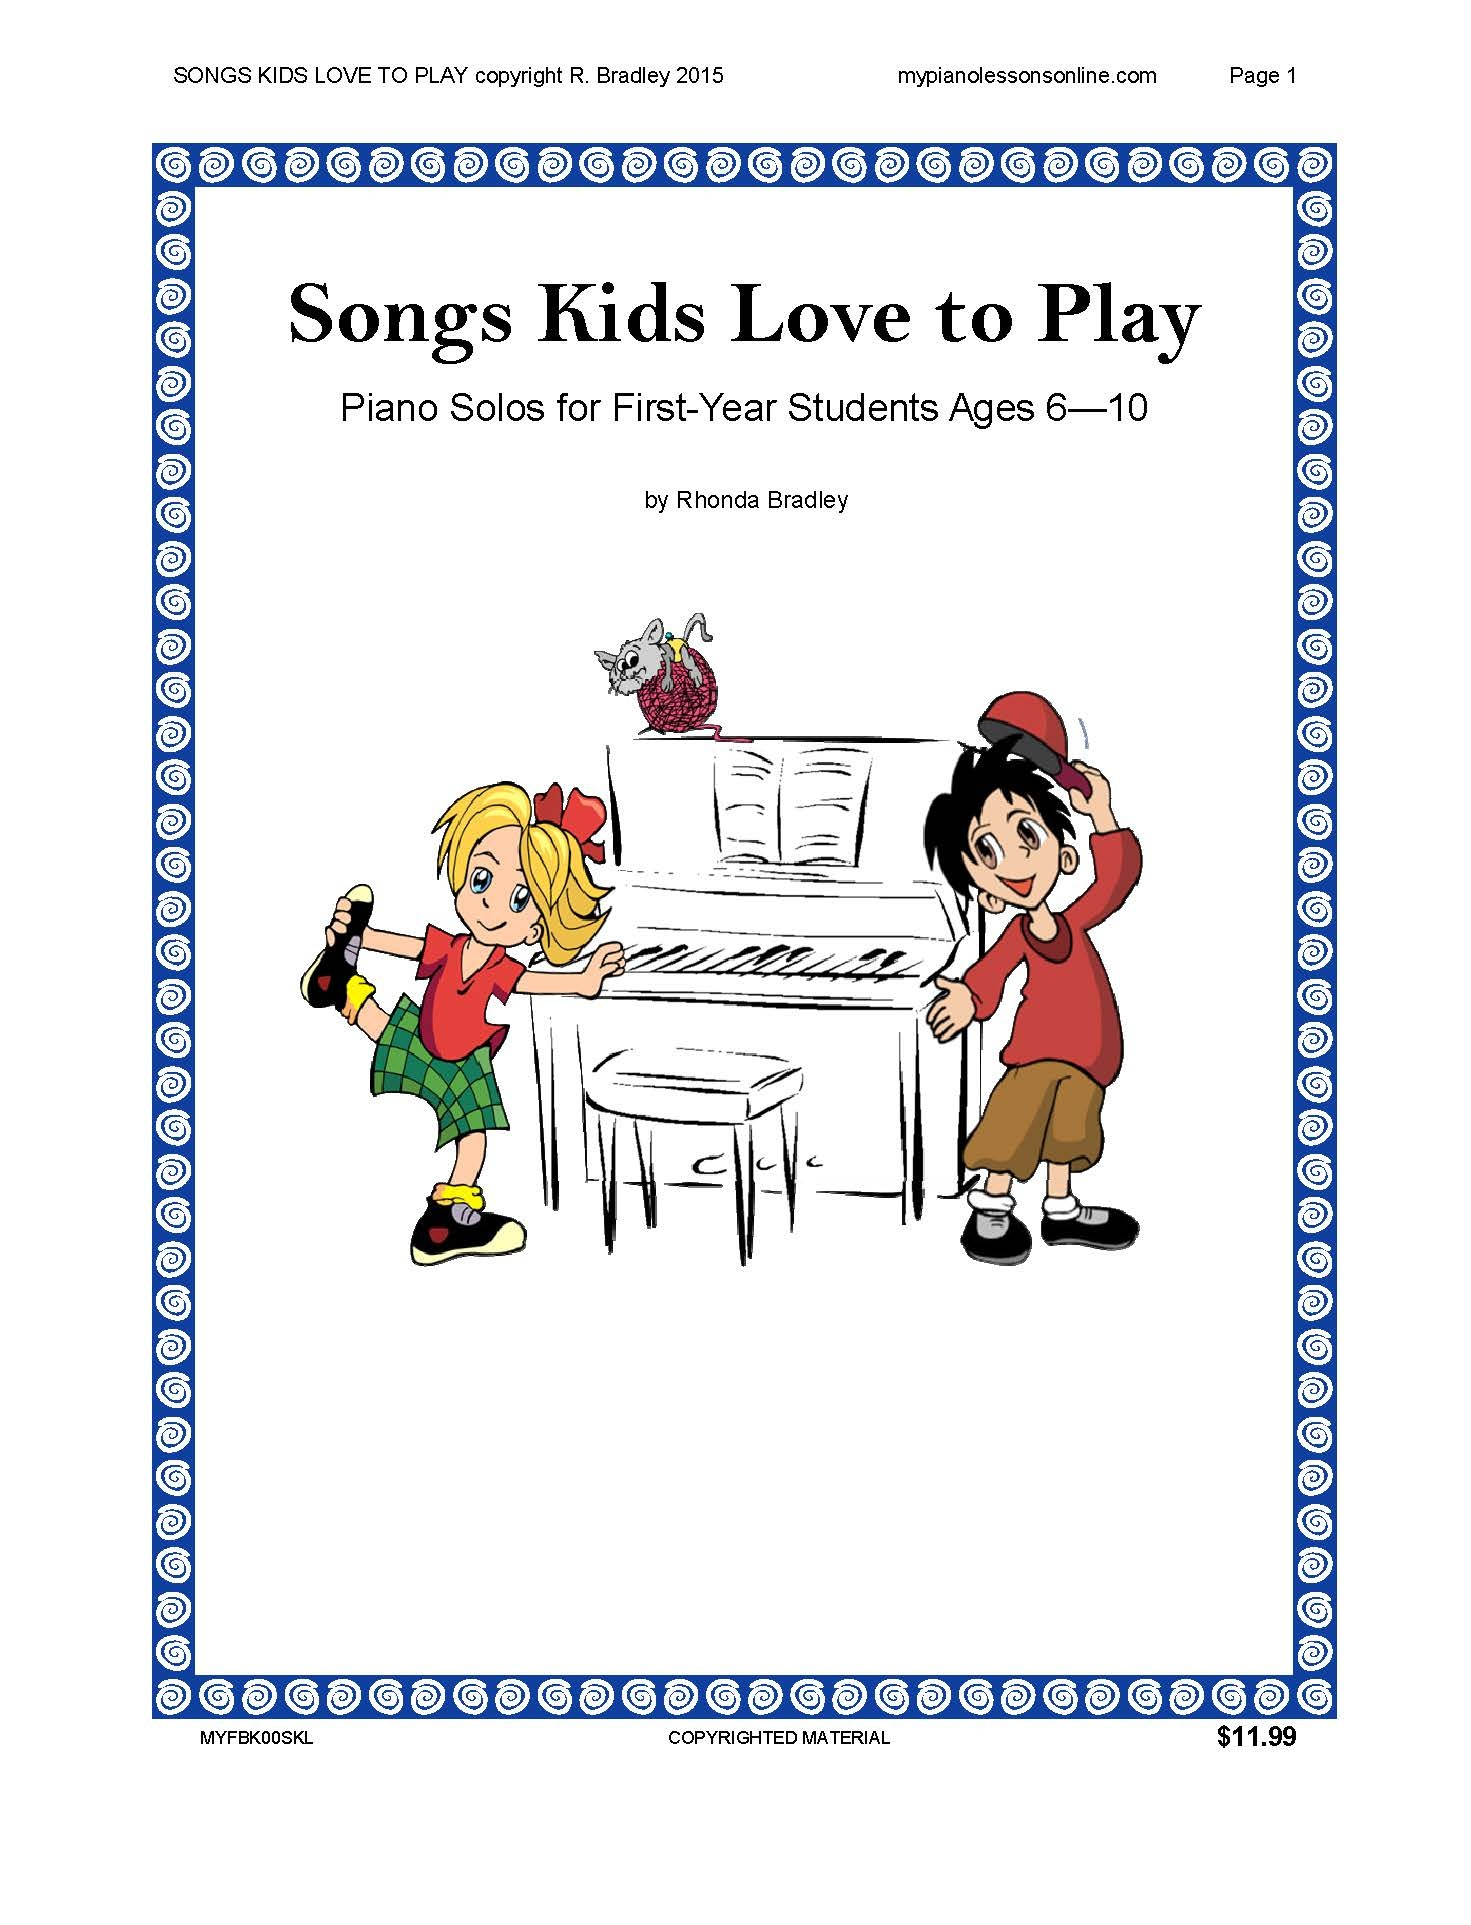 Songs Kids Love to Play